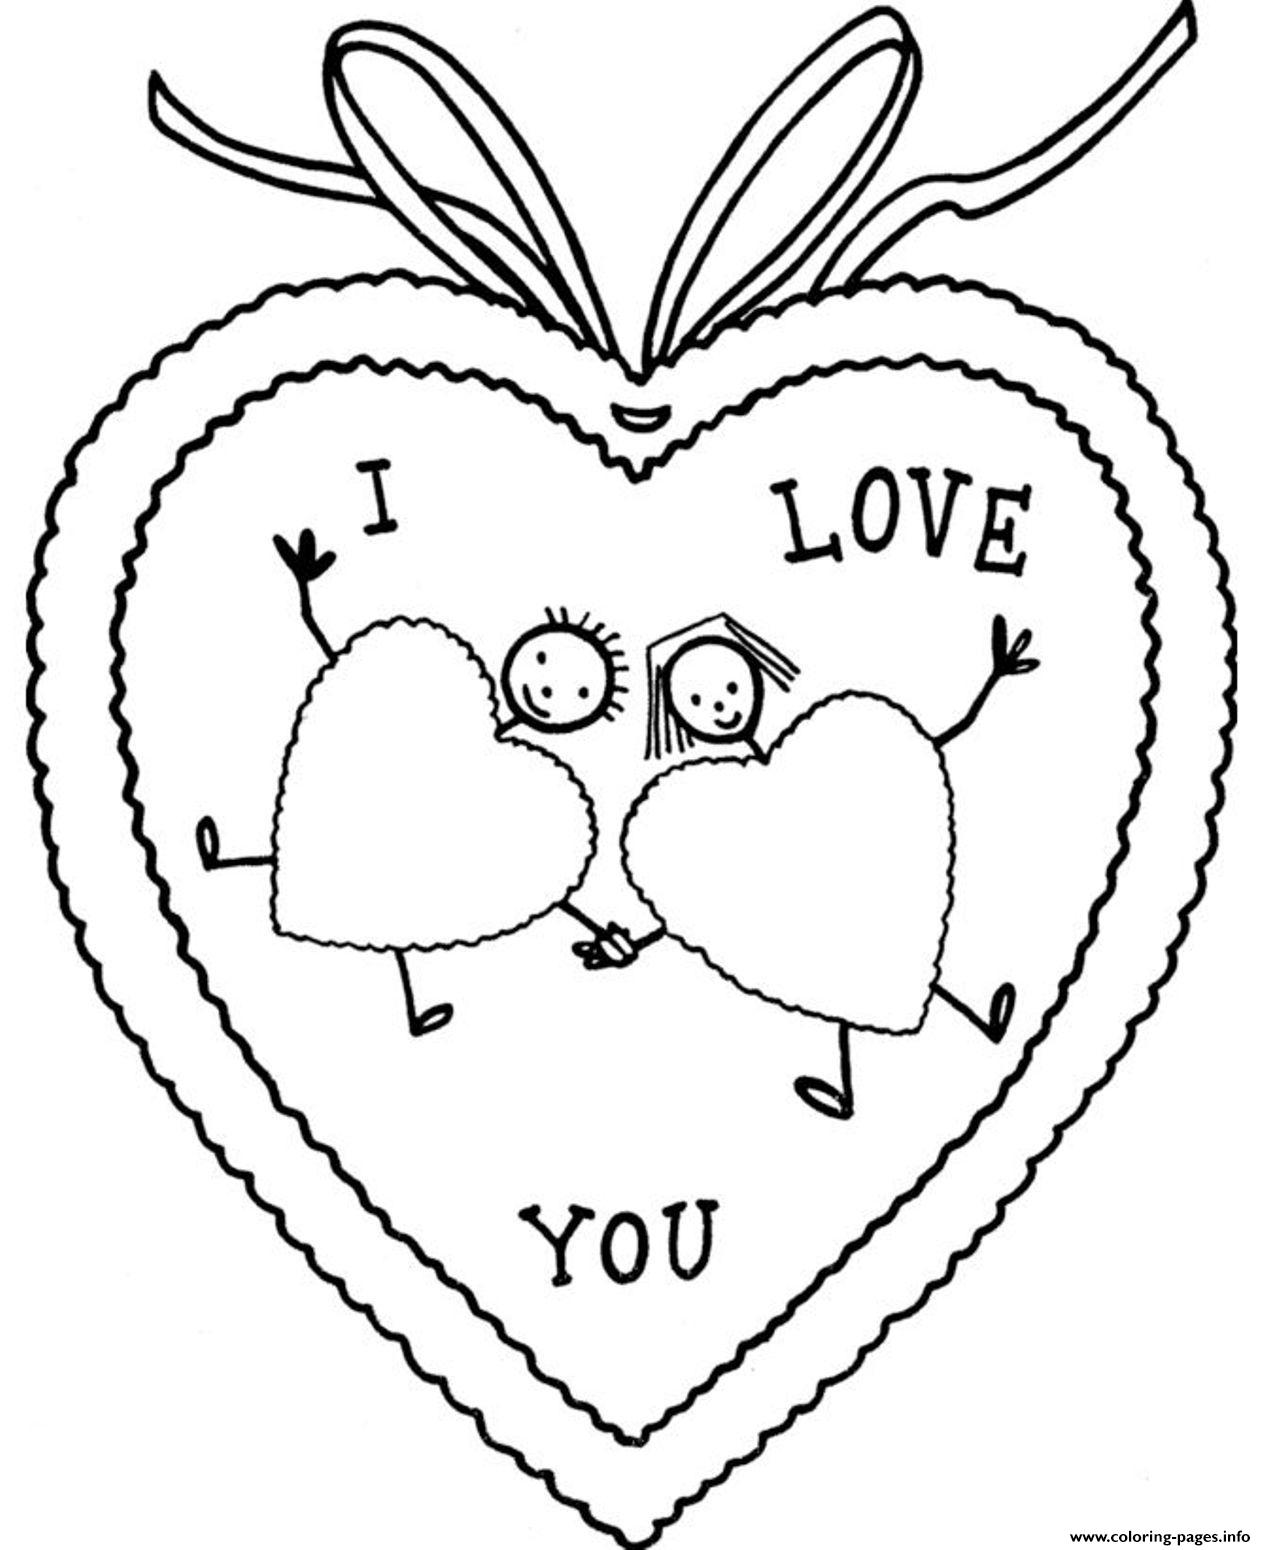 Valentines Day S I Love You8c37 coloring pages